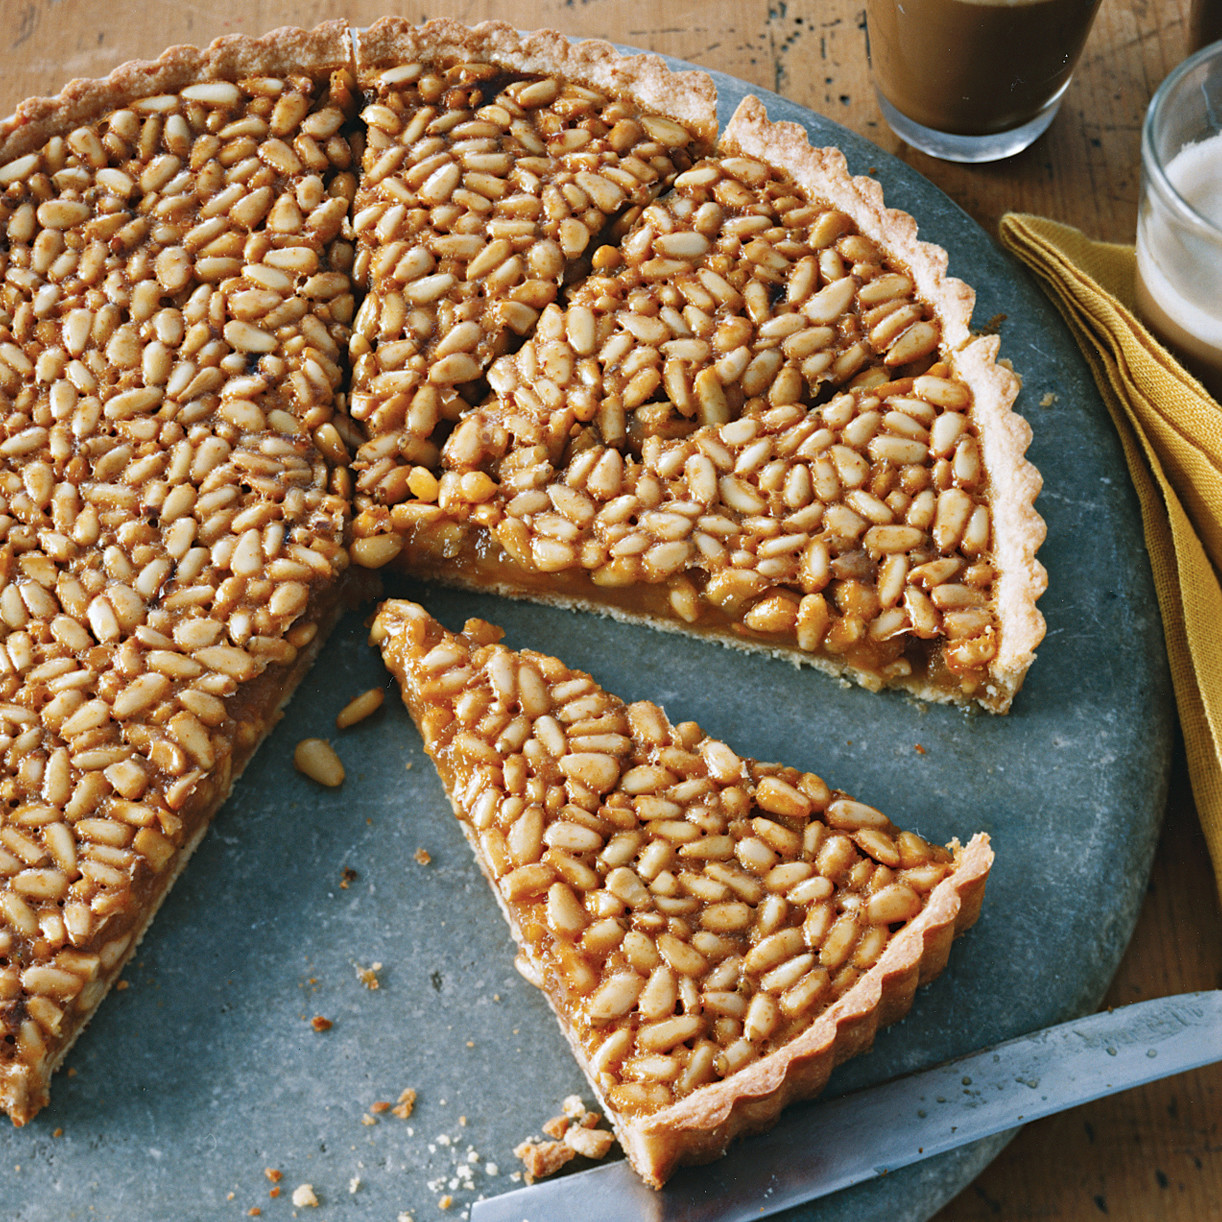 Honey And Pine Nut Tart